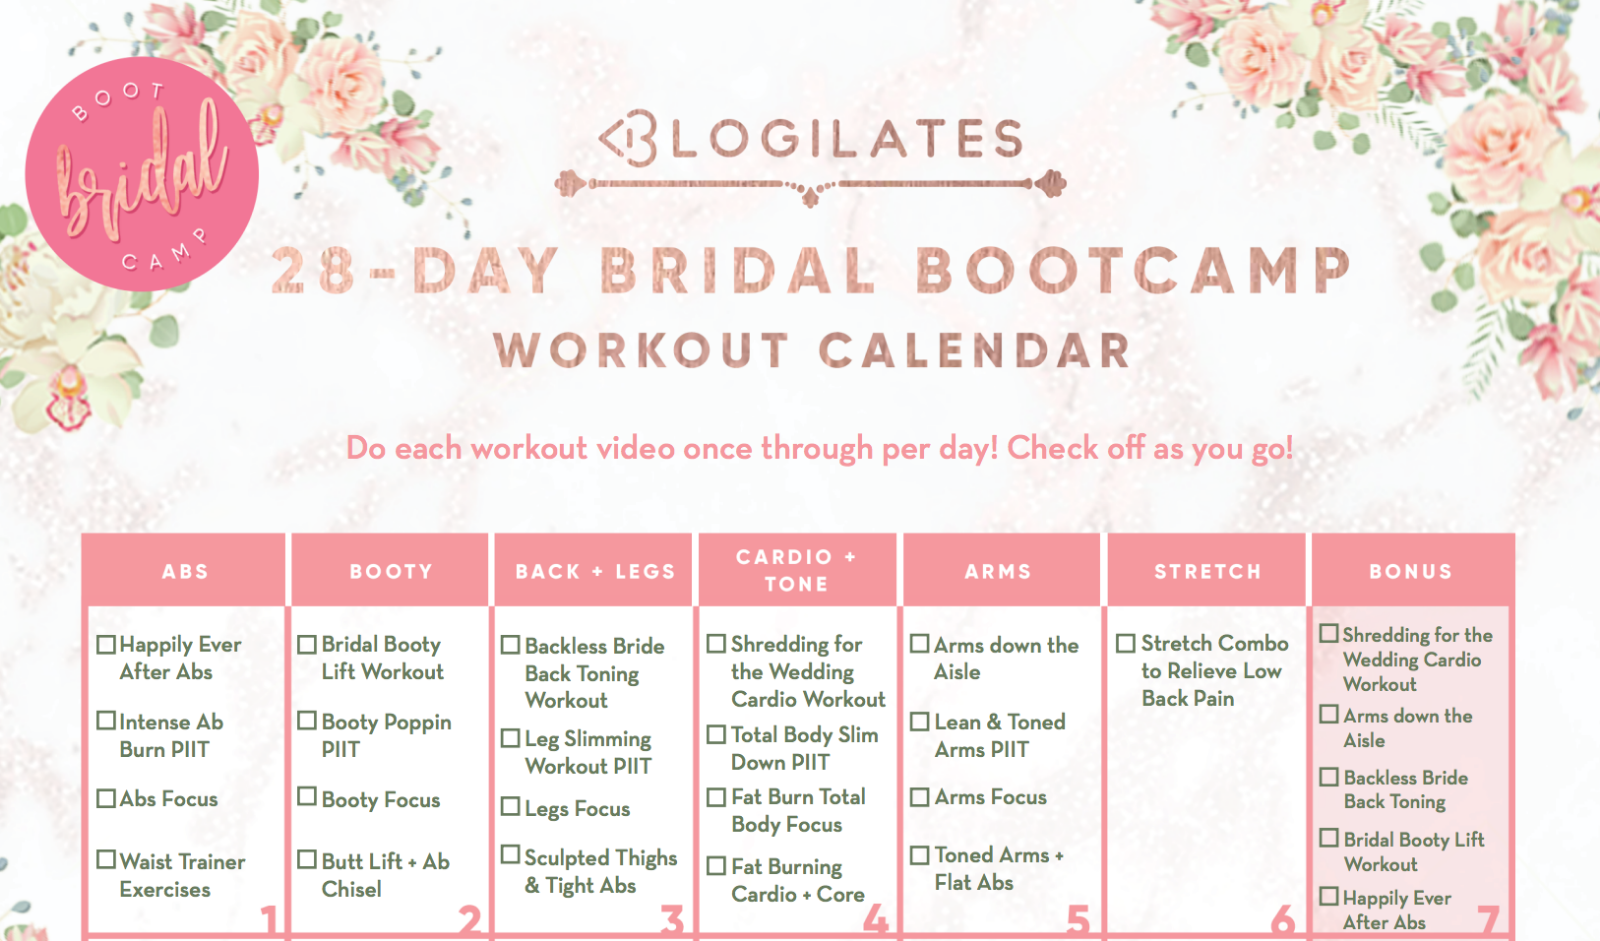 9bb2406ba6e 28-Day Bridal Bootcamp Workout Calendar – Blogilates